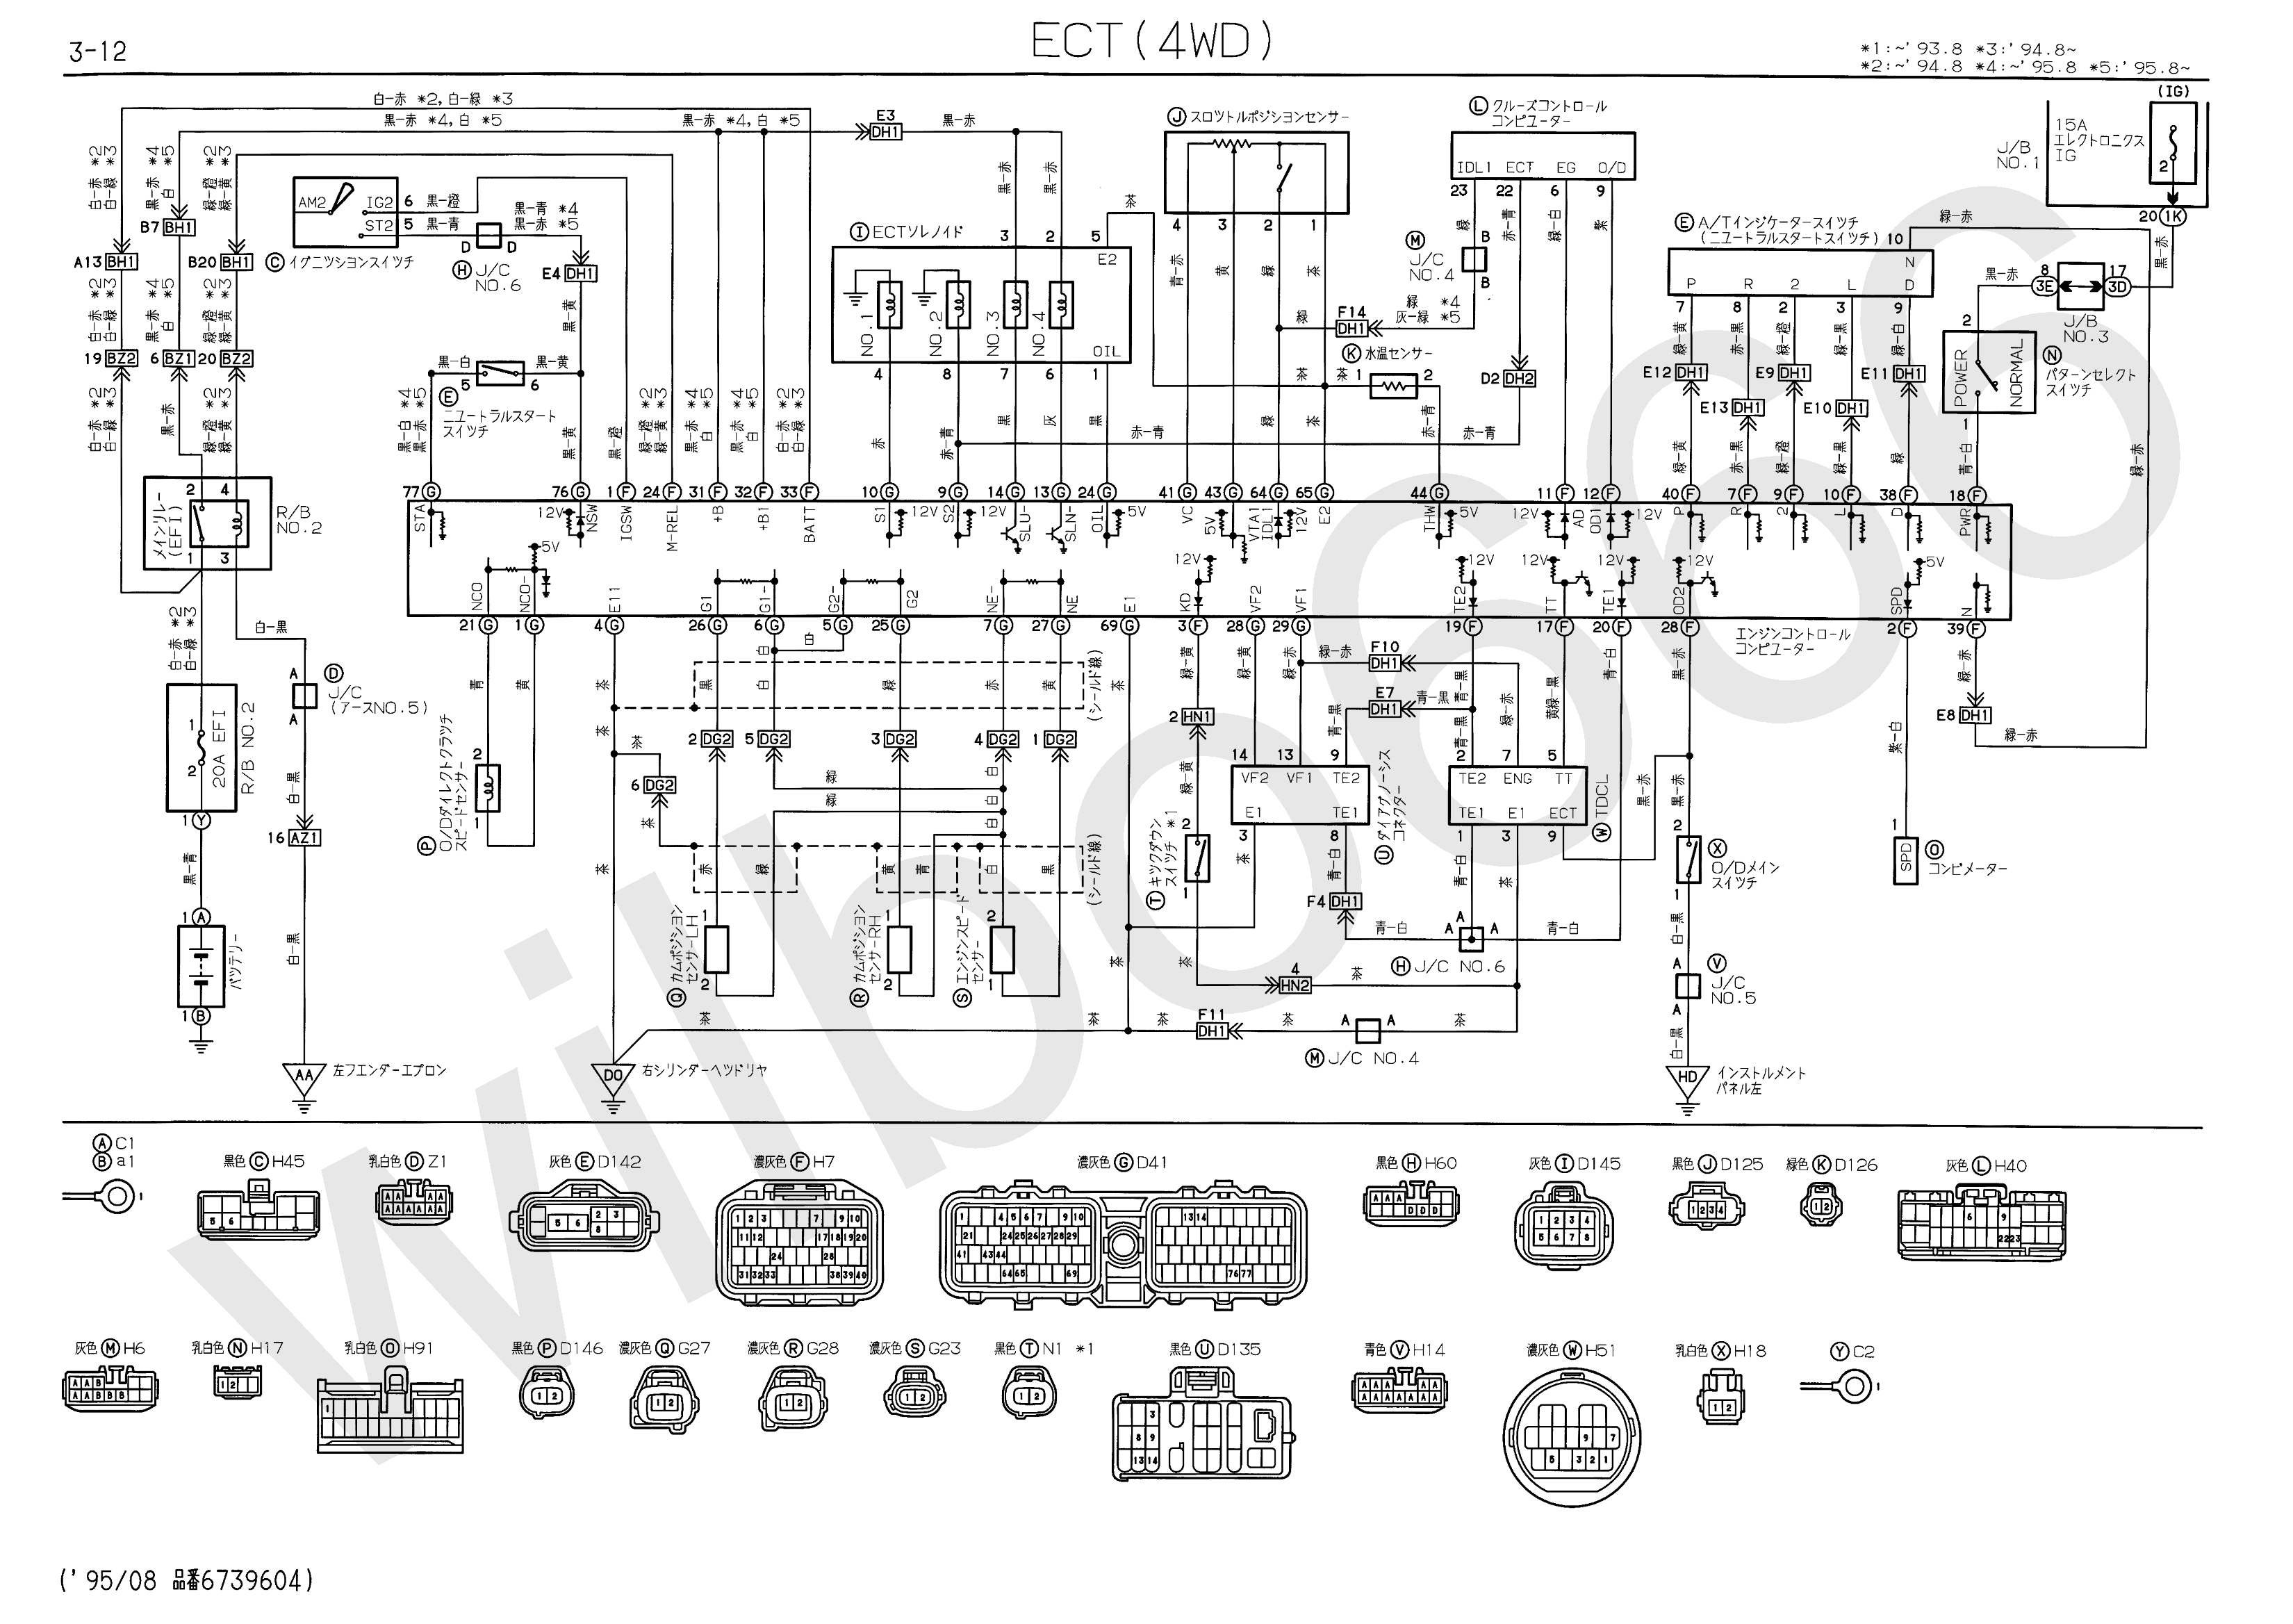 Nissan Diagrams : Nissan Elgrand E51 Fuse Box Diagram